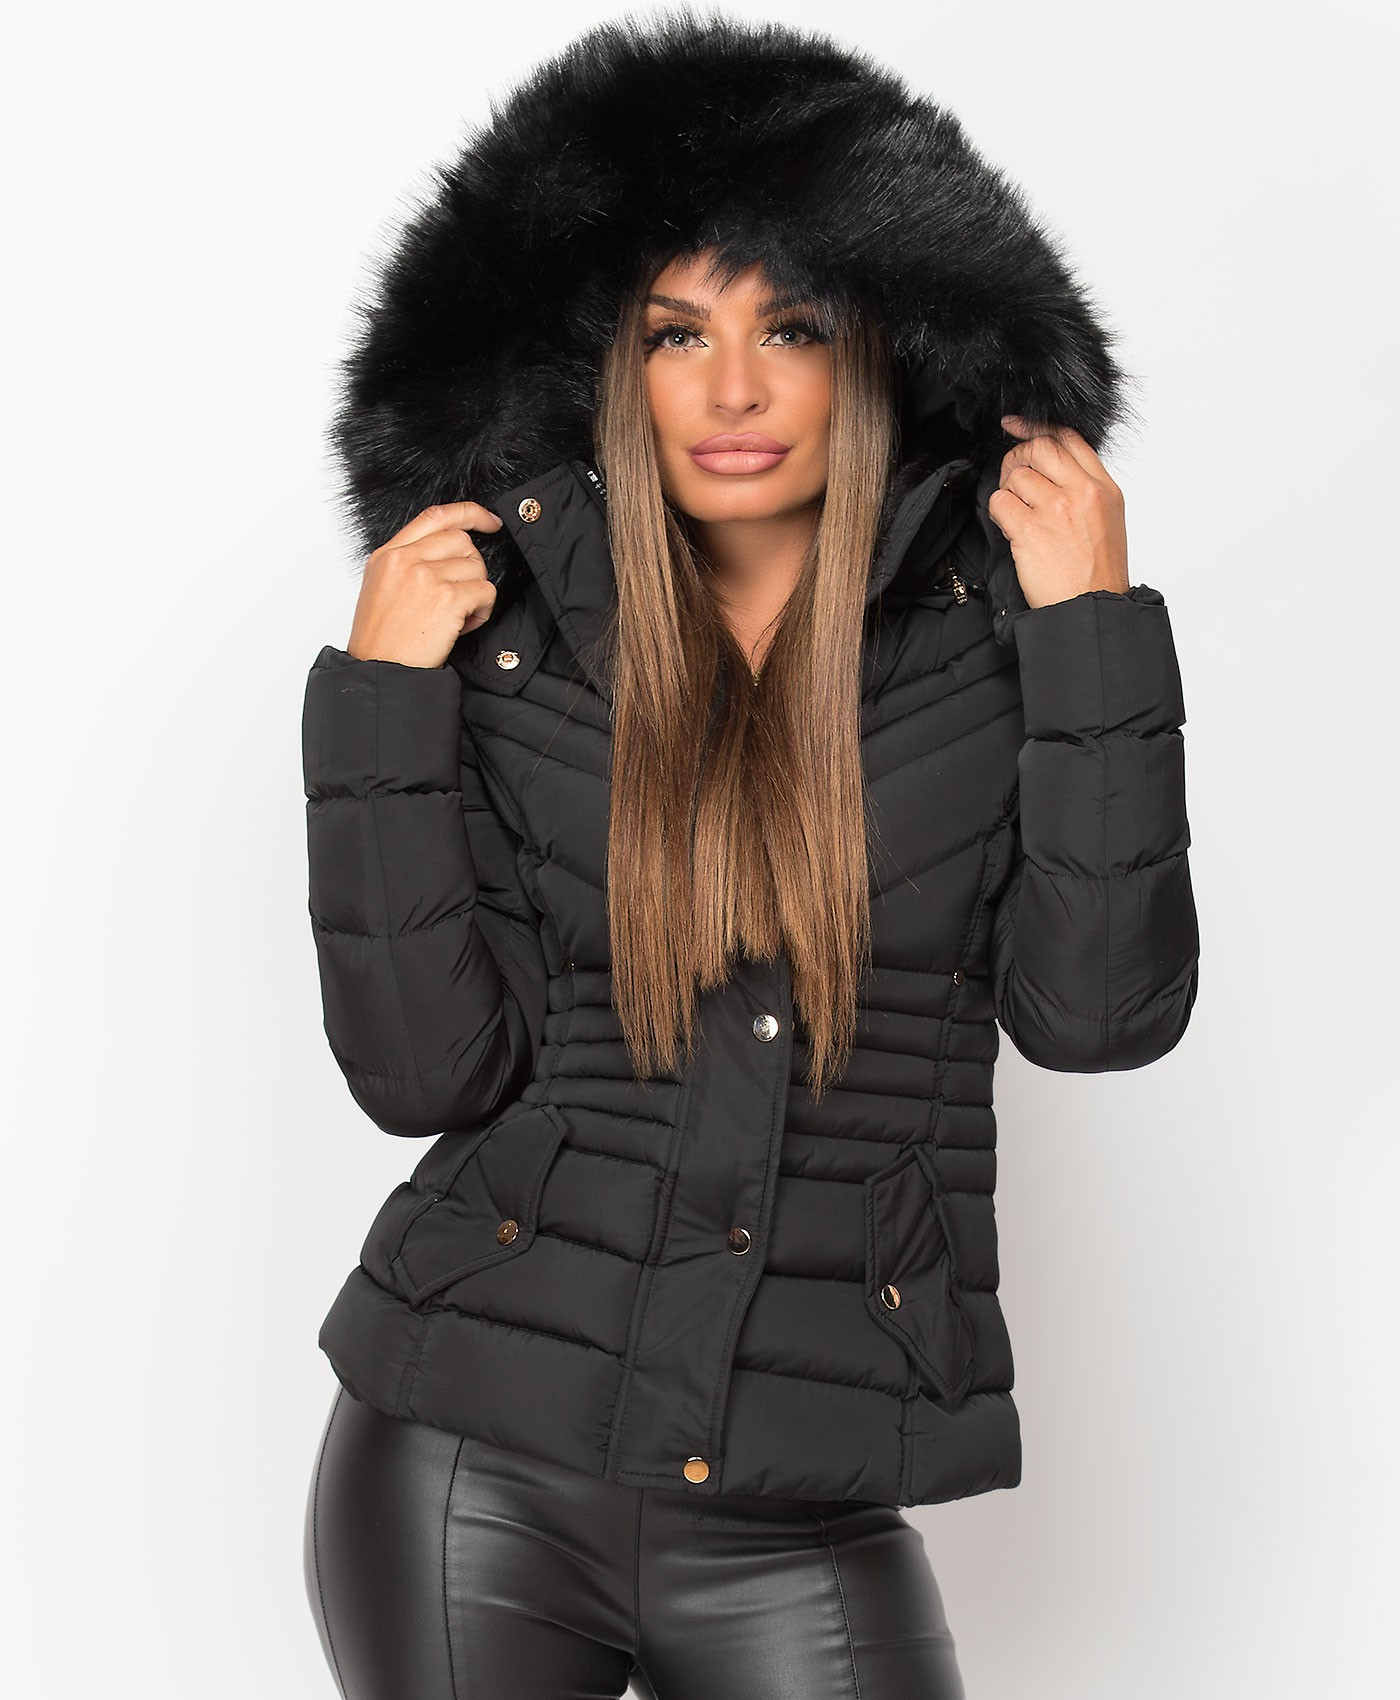 Black-Y-958-Padded-Quilted-Faux-Fur-Hooded-Jacket-1